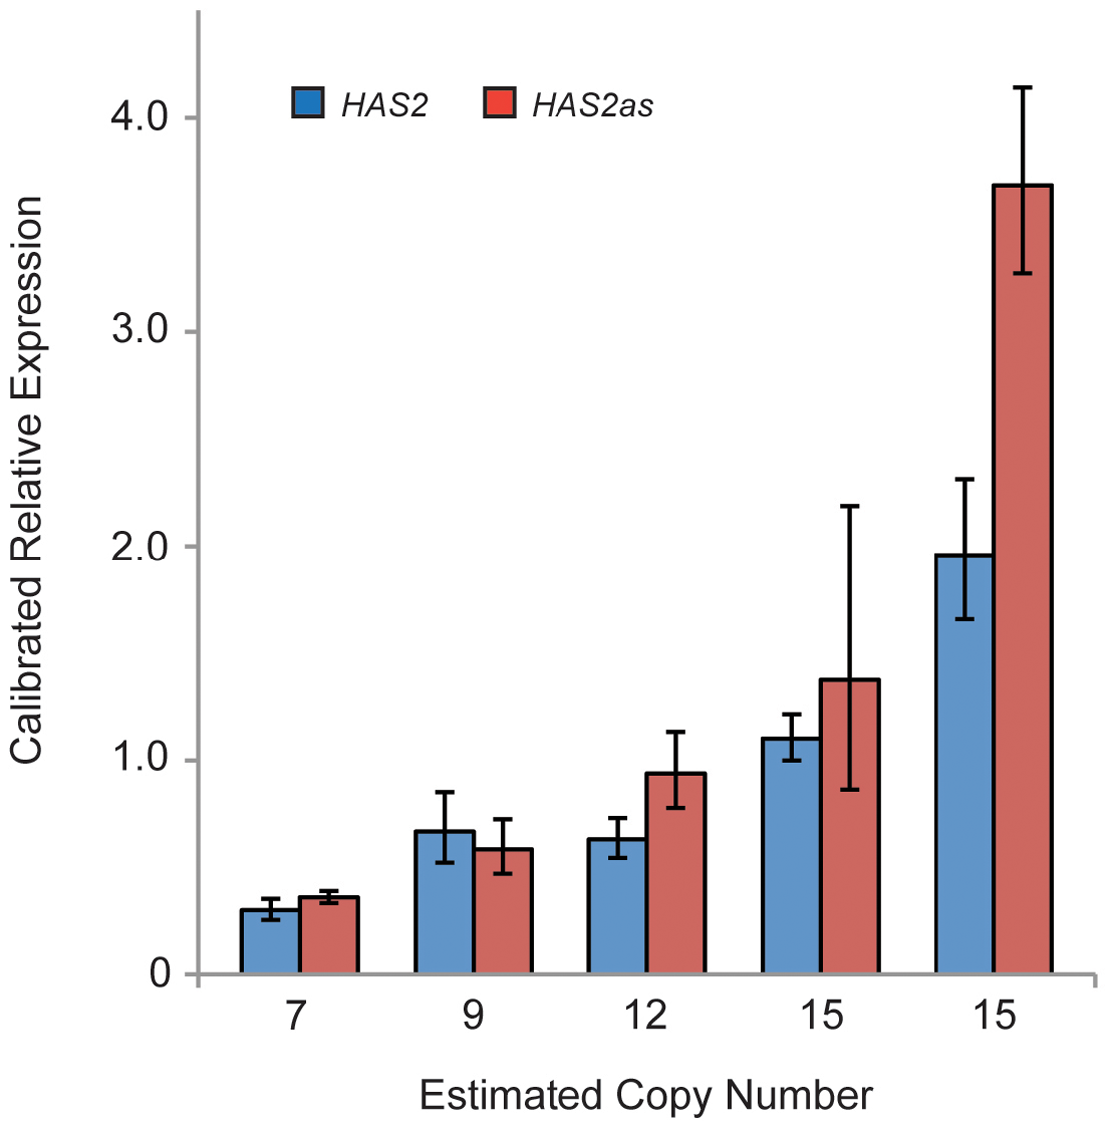 Expression analysis reveals a trend of increased <i>HAS2</i> and <i>HAS2as</i> expression with copy number.